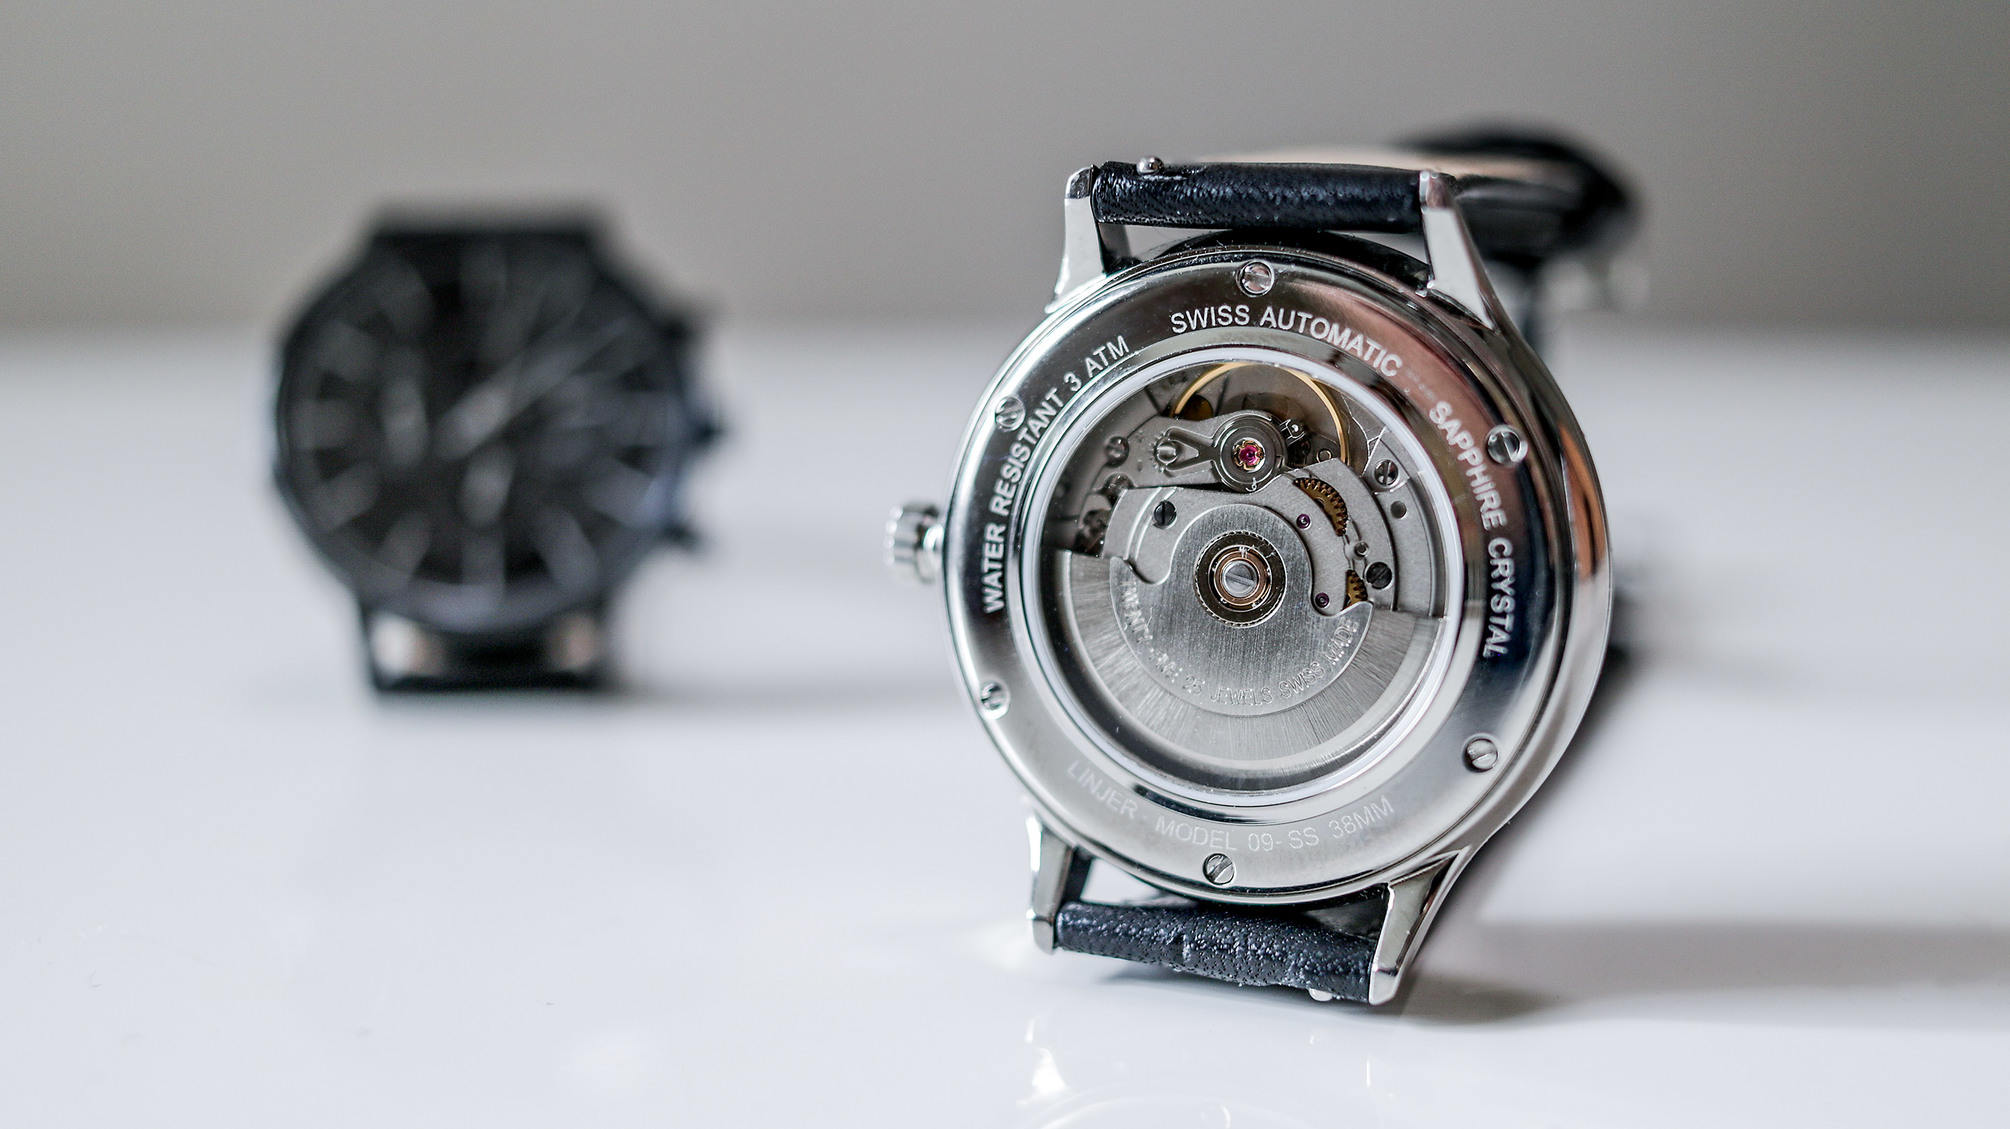 ETA 2824-2 Movement